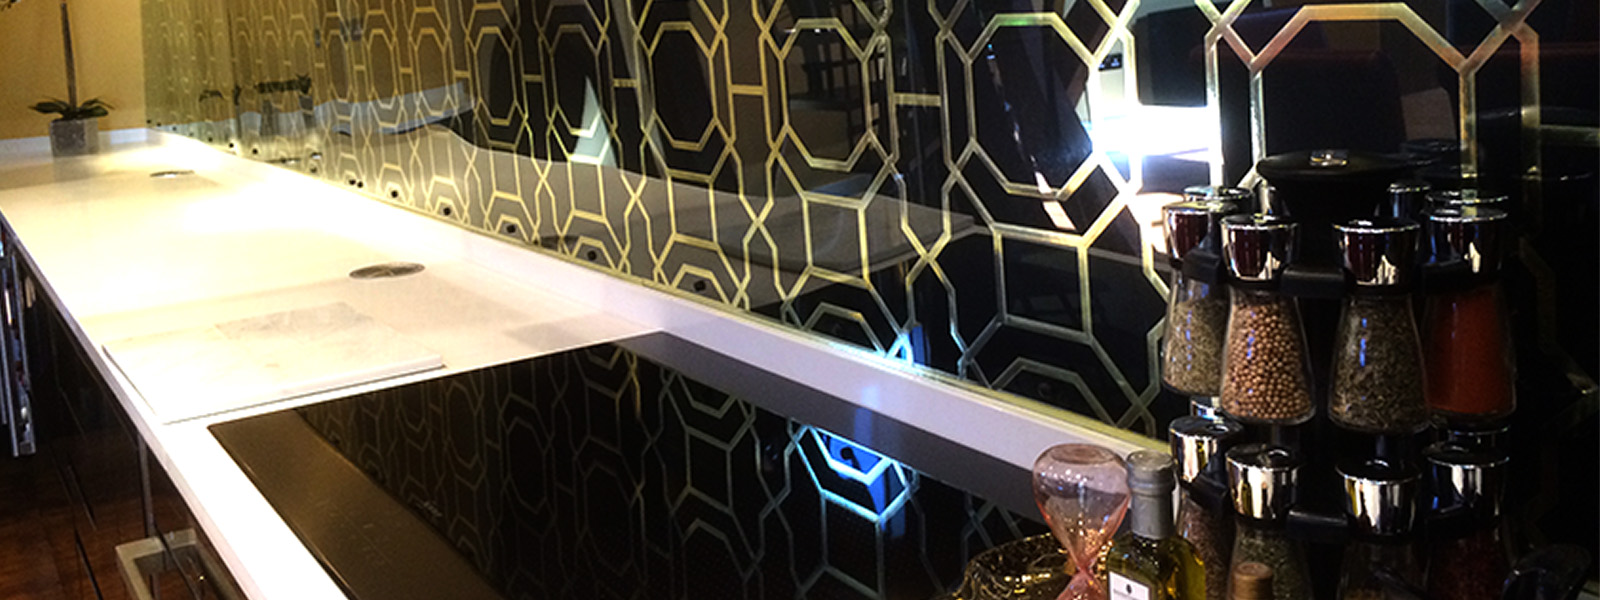 Kitchen, Interior design styling services by Moji Interiors in Hove